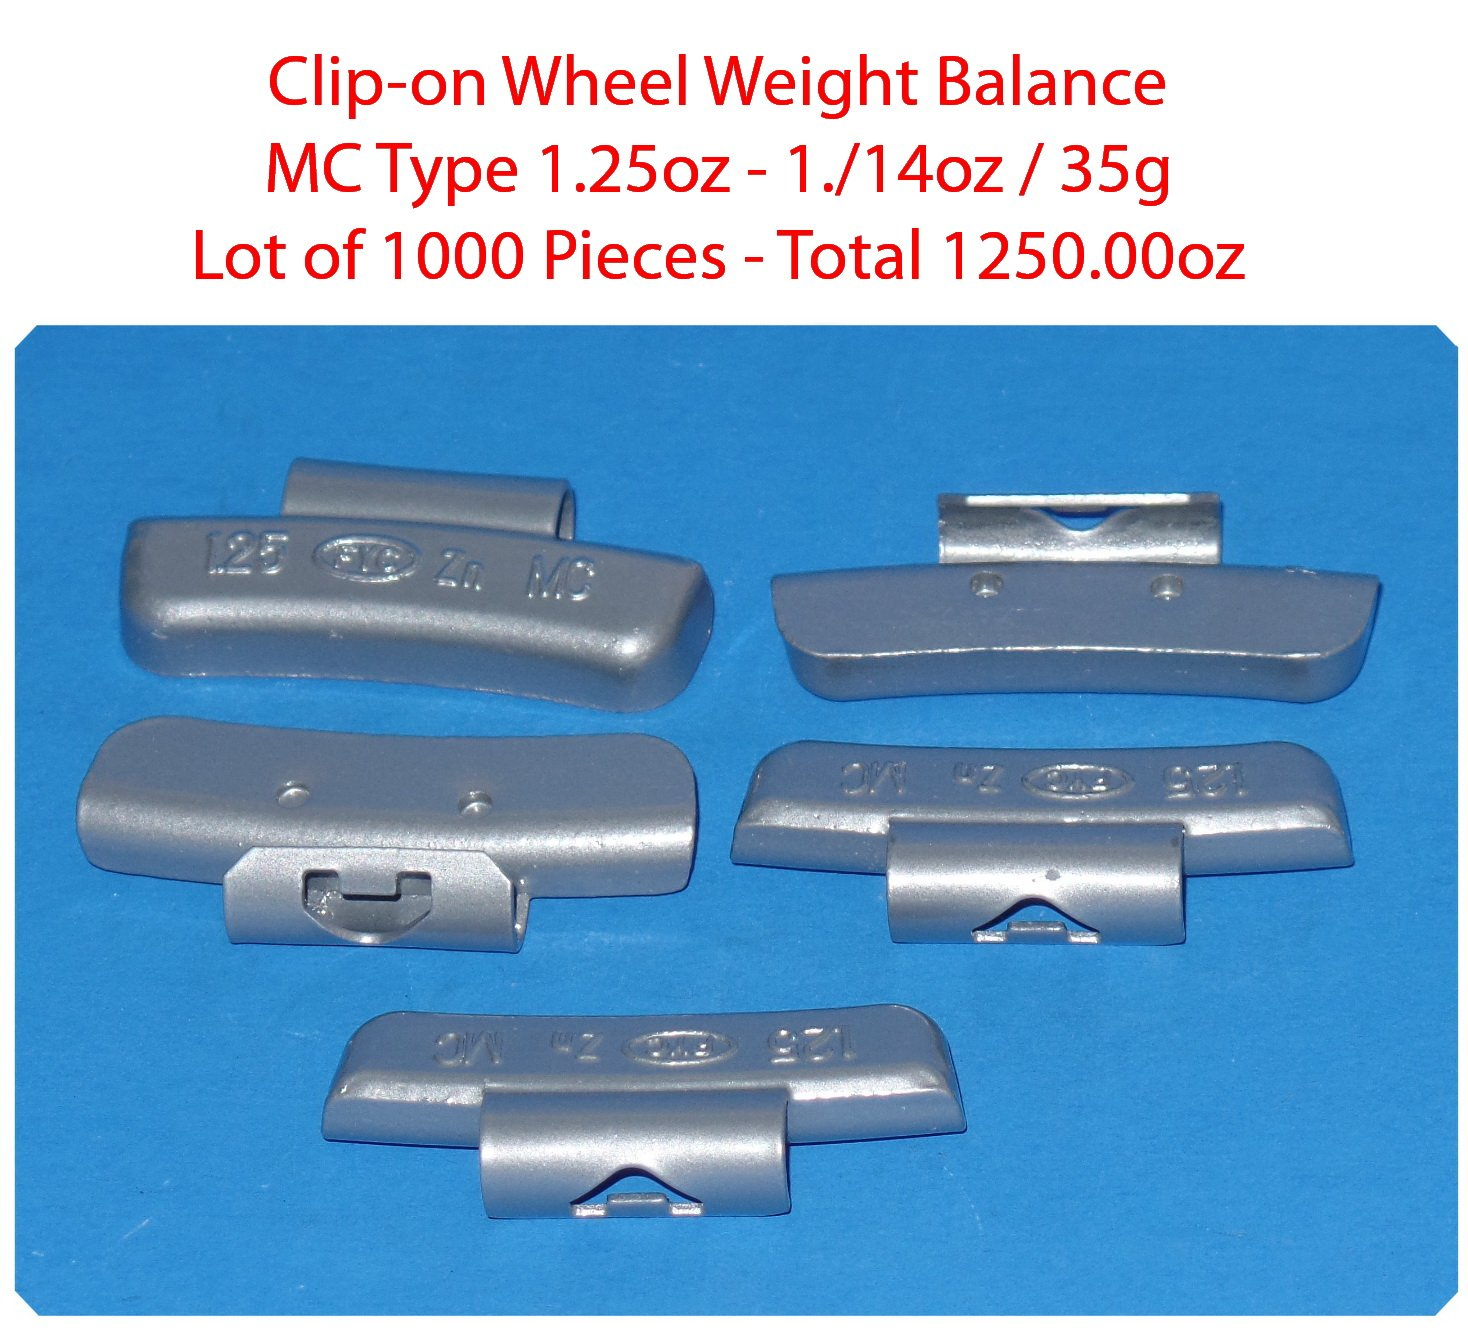 (1000 Pieces) ZN CLIP-ON WHEEL WEIGHT BALANCE 1.25 1.1/4oz MC Type Total 1250.00oz (Use for All Types of Alloy wheels On Passenger Cars , Trucks , Vans & Motorcycles) by VPro (Image #1)